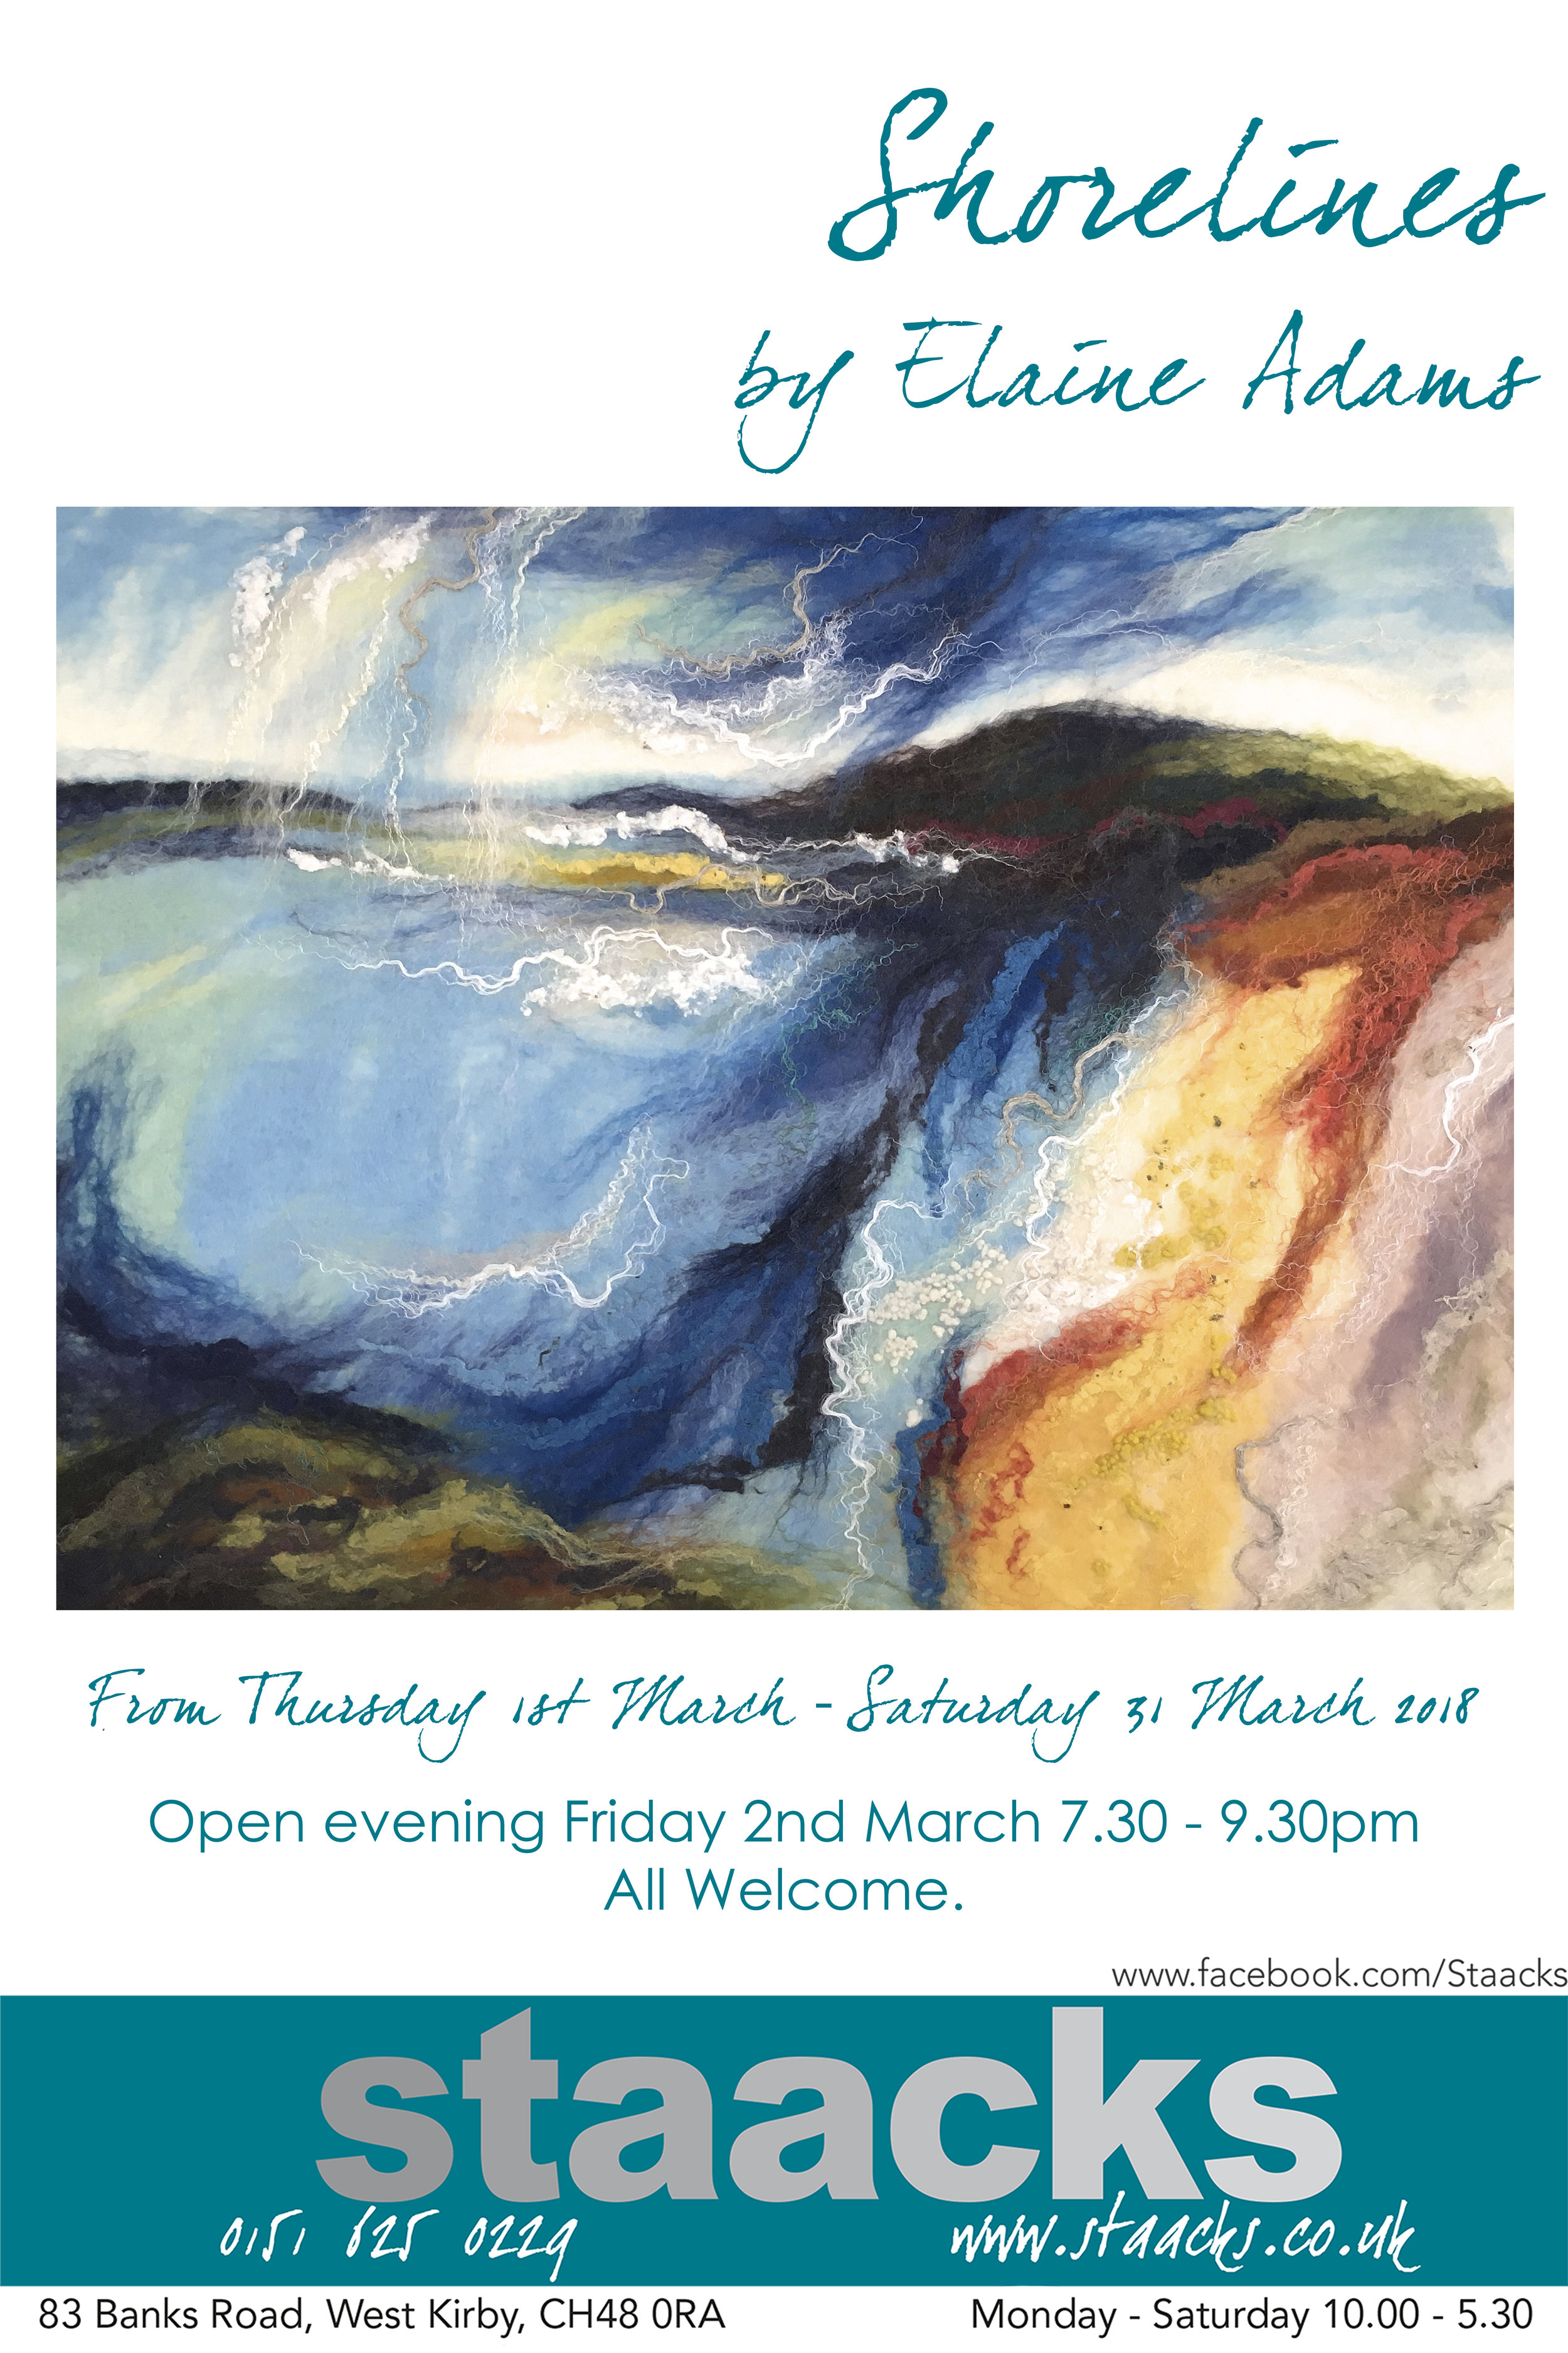 Open Evening - Come along and enjoy the latest work by Elaine Adams, meet the artist and have a glass with us.This stunning work explores the colour and light of our ever changing shorelines and is captured beautifully through the use of textiles.Everyone is welcome.